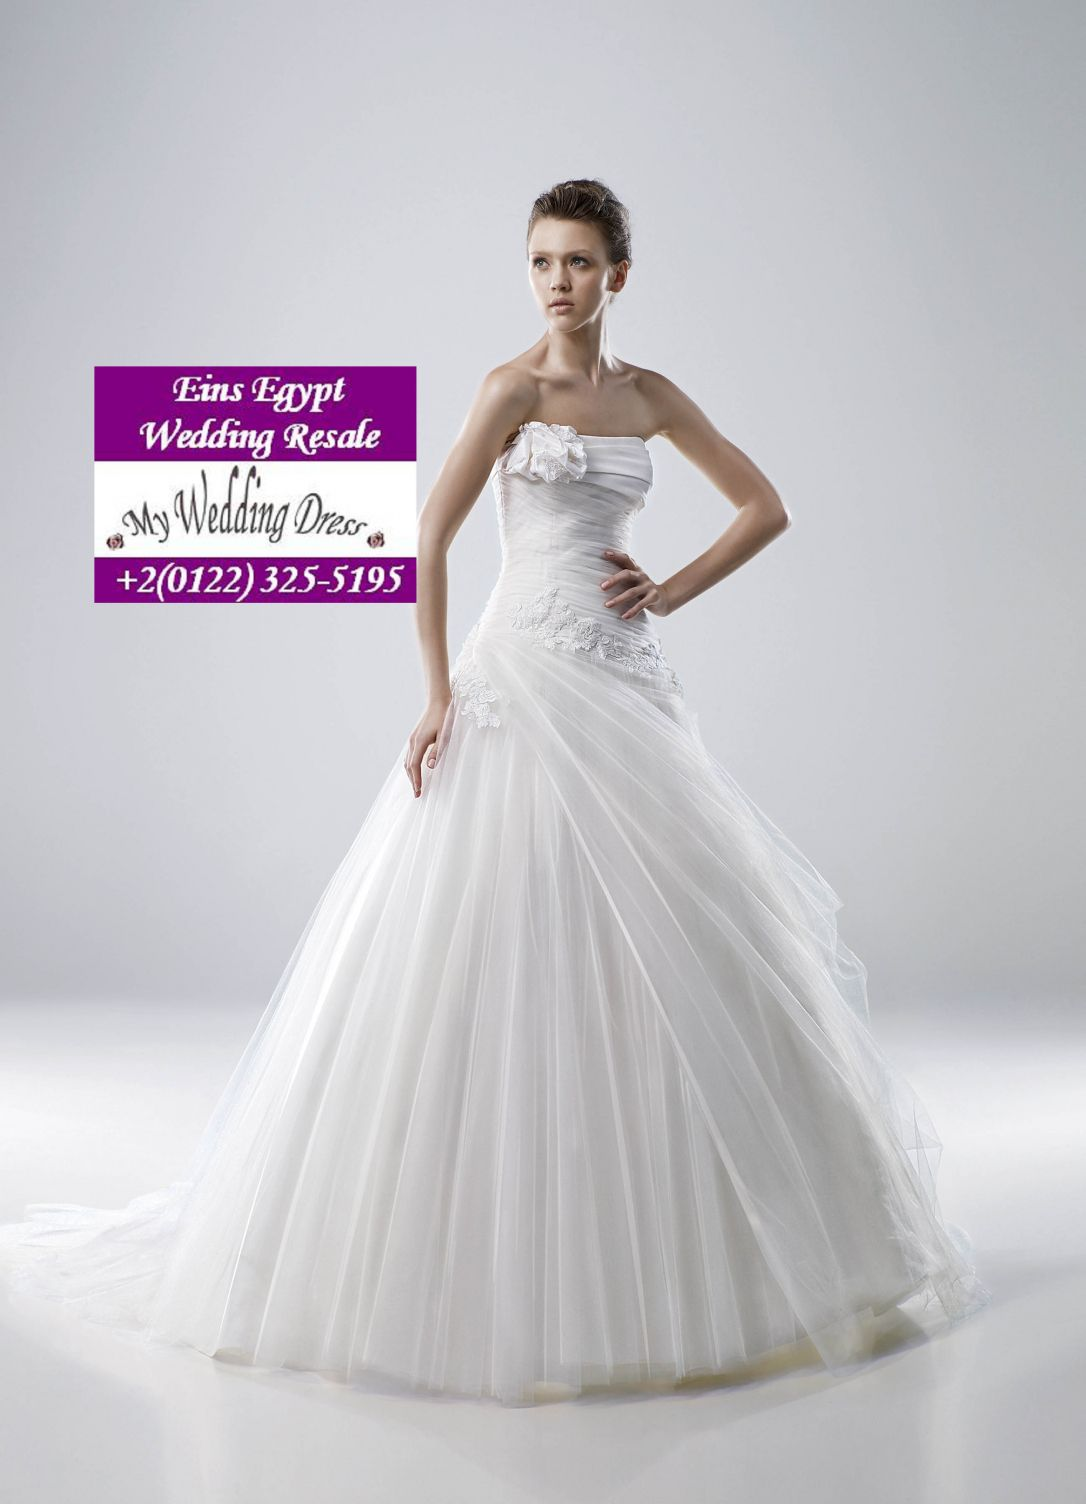 Sell Used Wedding Dress Dress Central